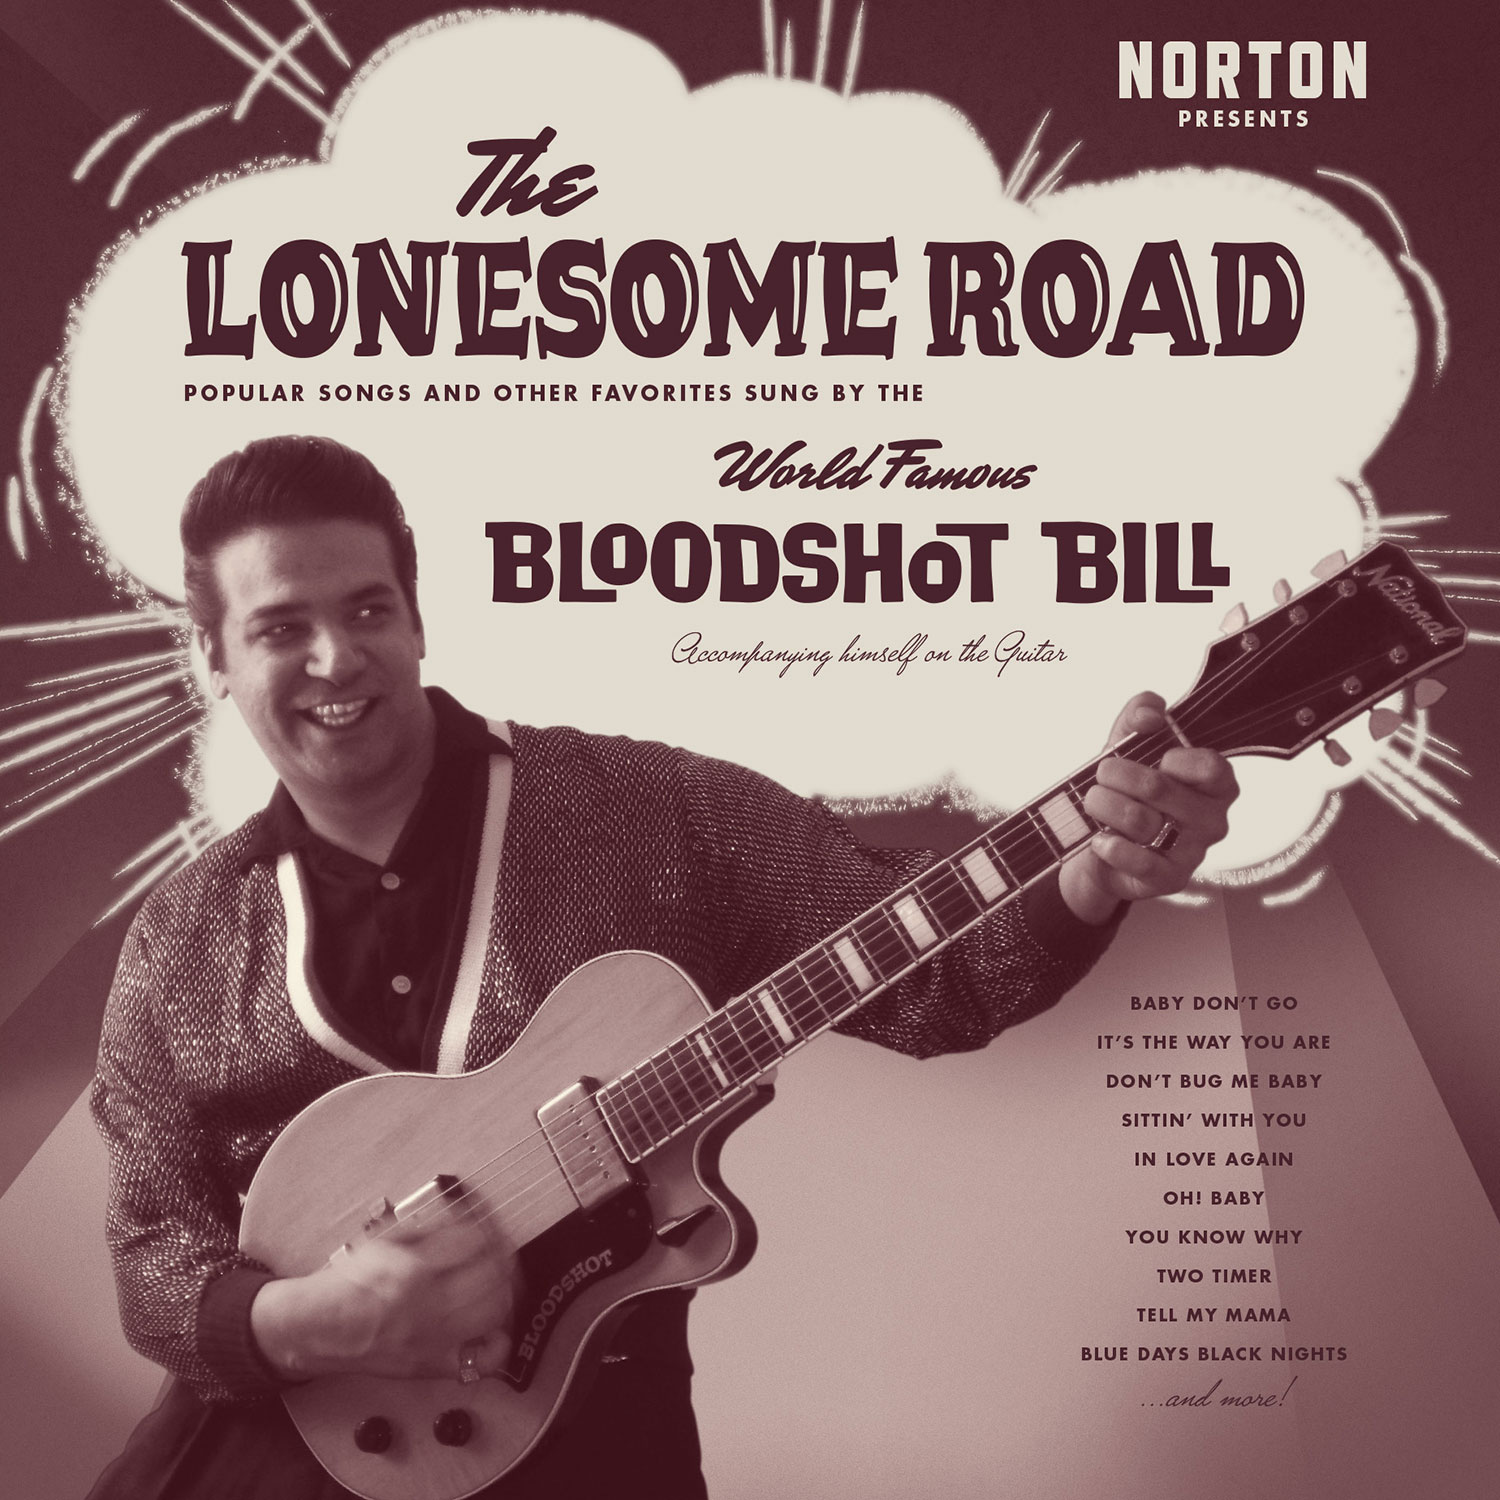 Bloodshot Bill - The Lonesome Road LP cover